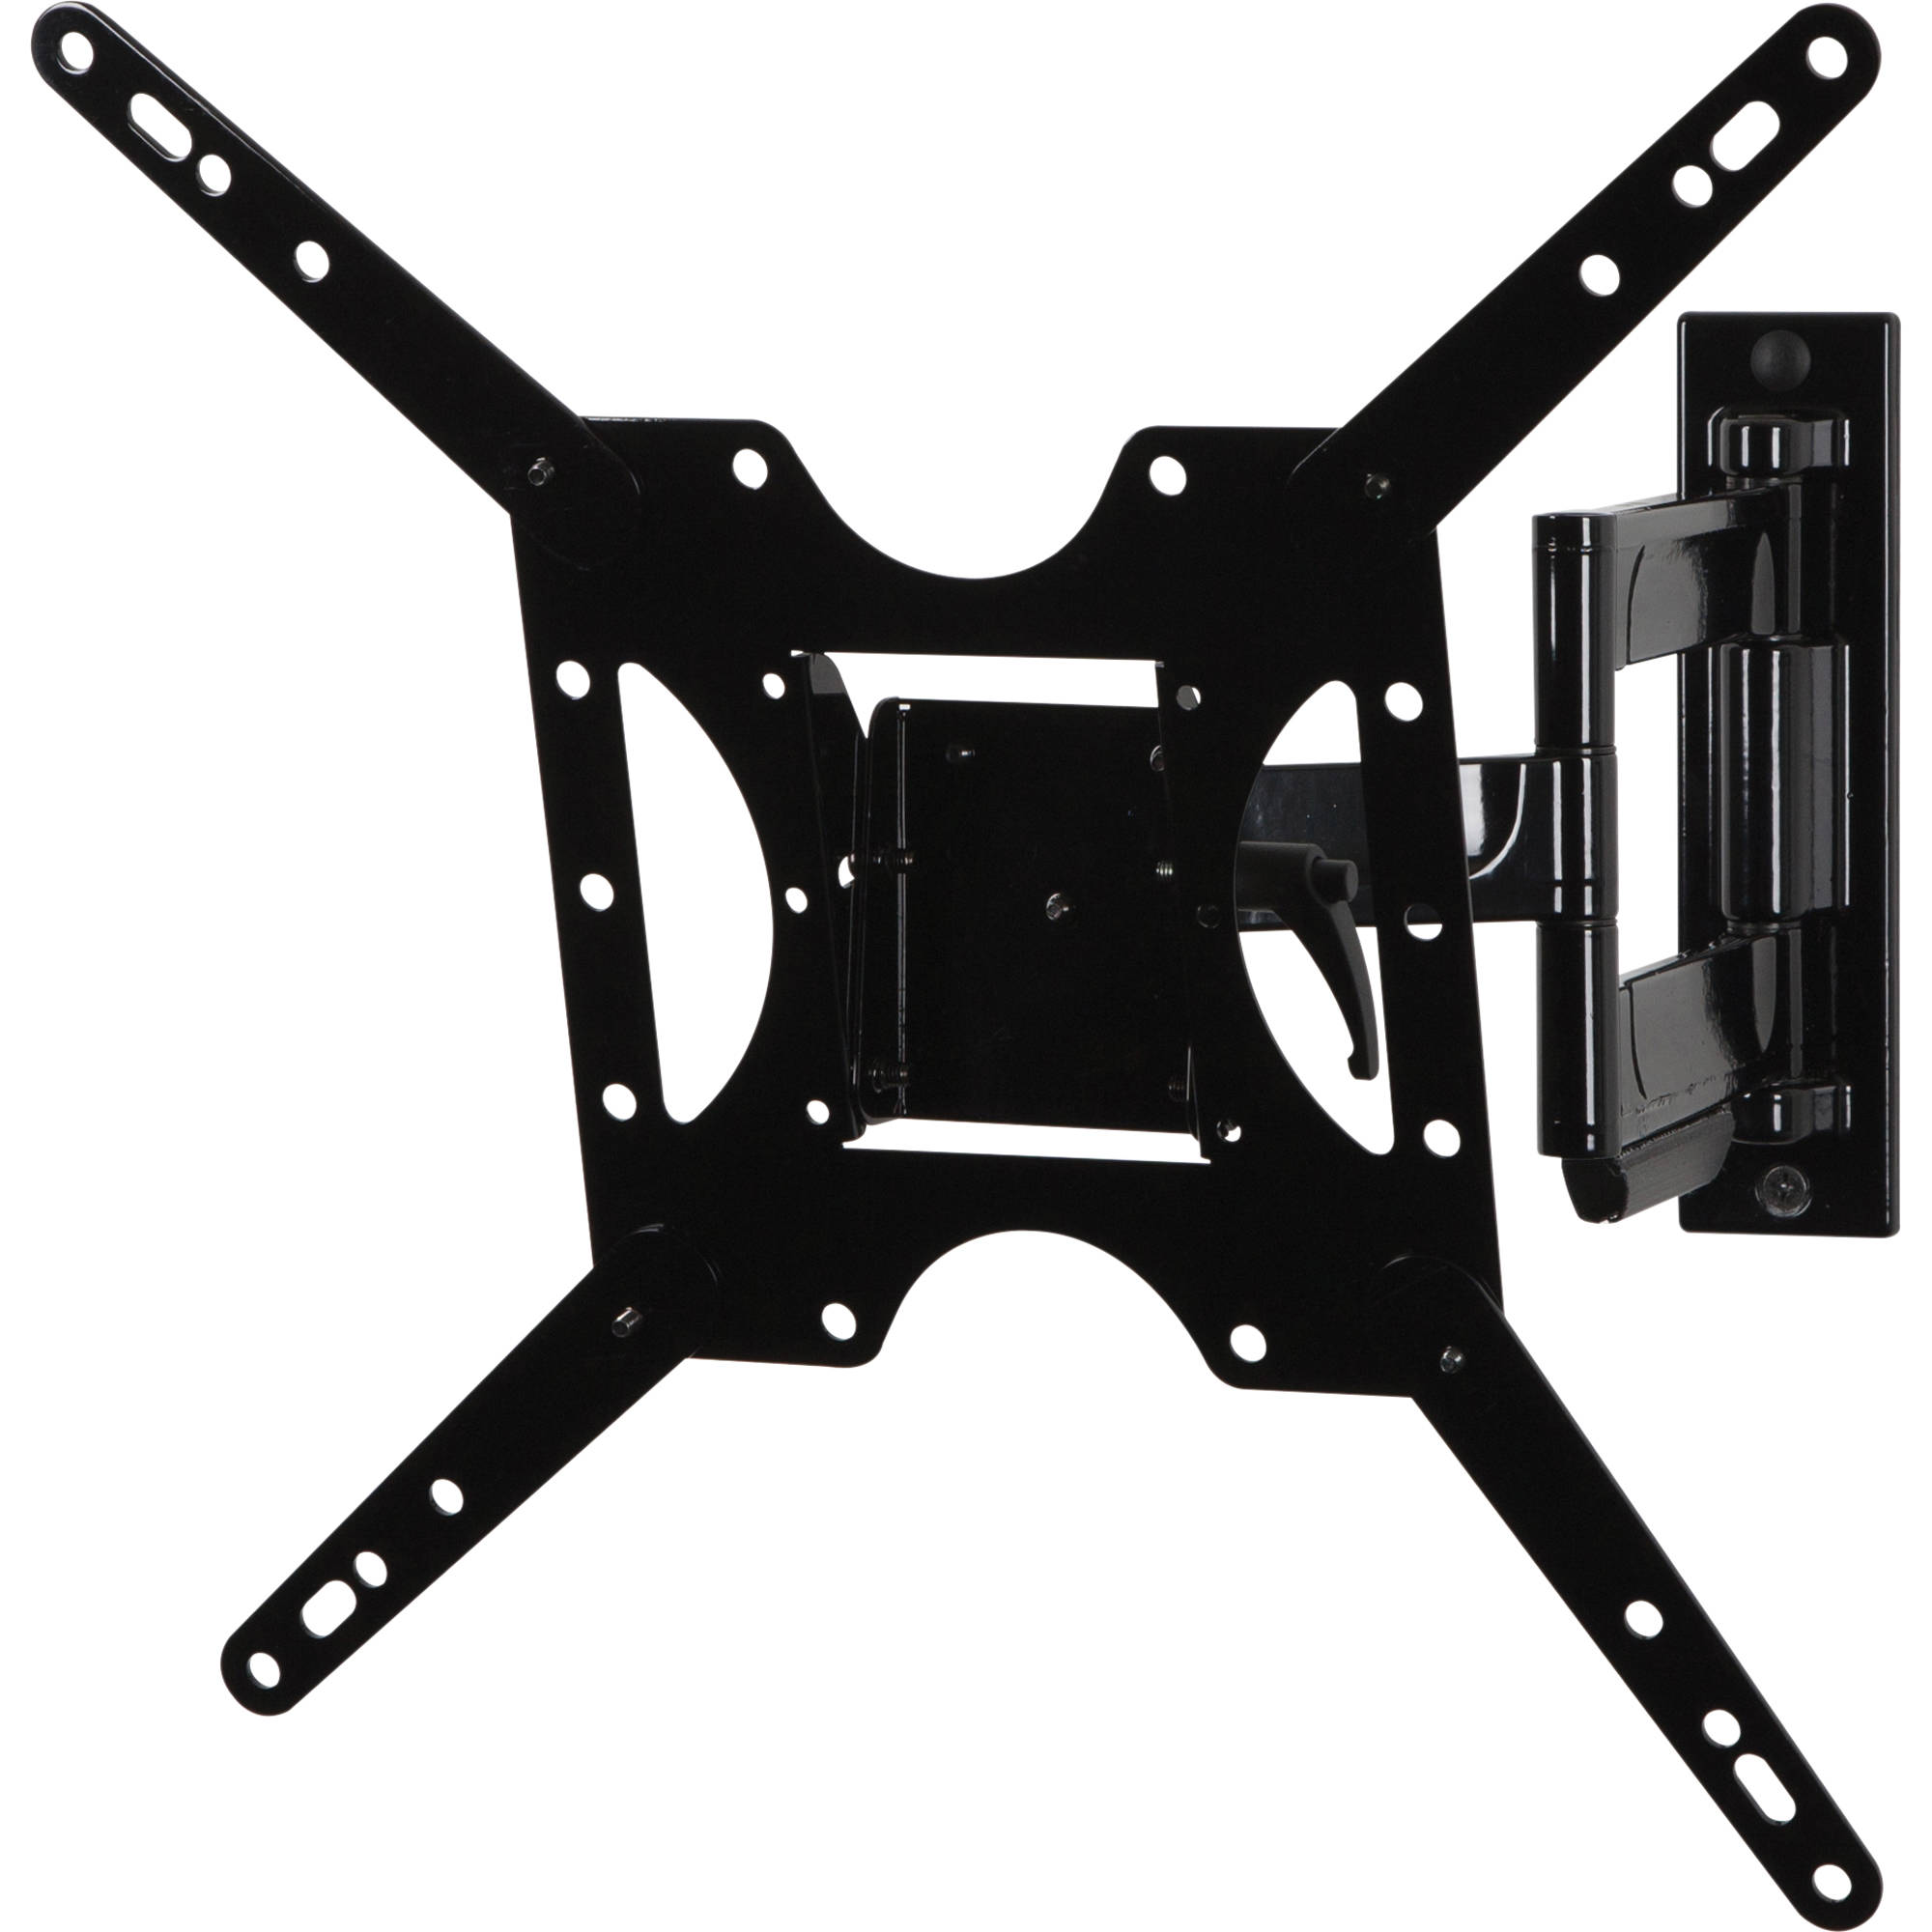 peerless av pa paramount articulating wall arm for pa peerless av pa746 paramount articulating wall arm for 32 to 50 screens